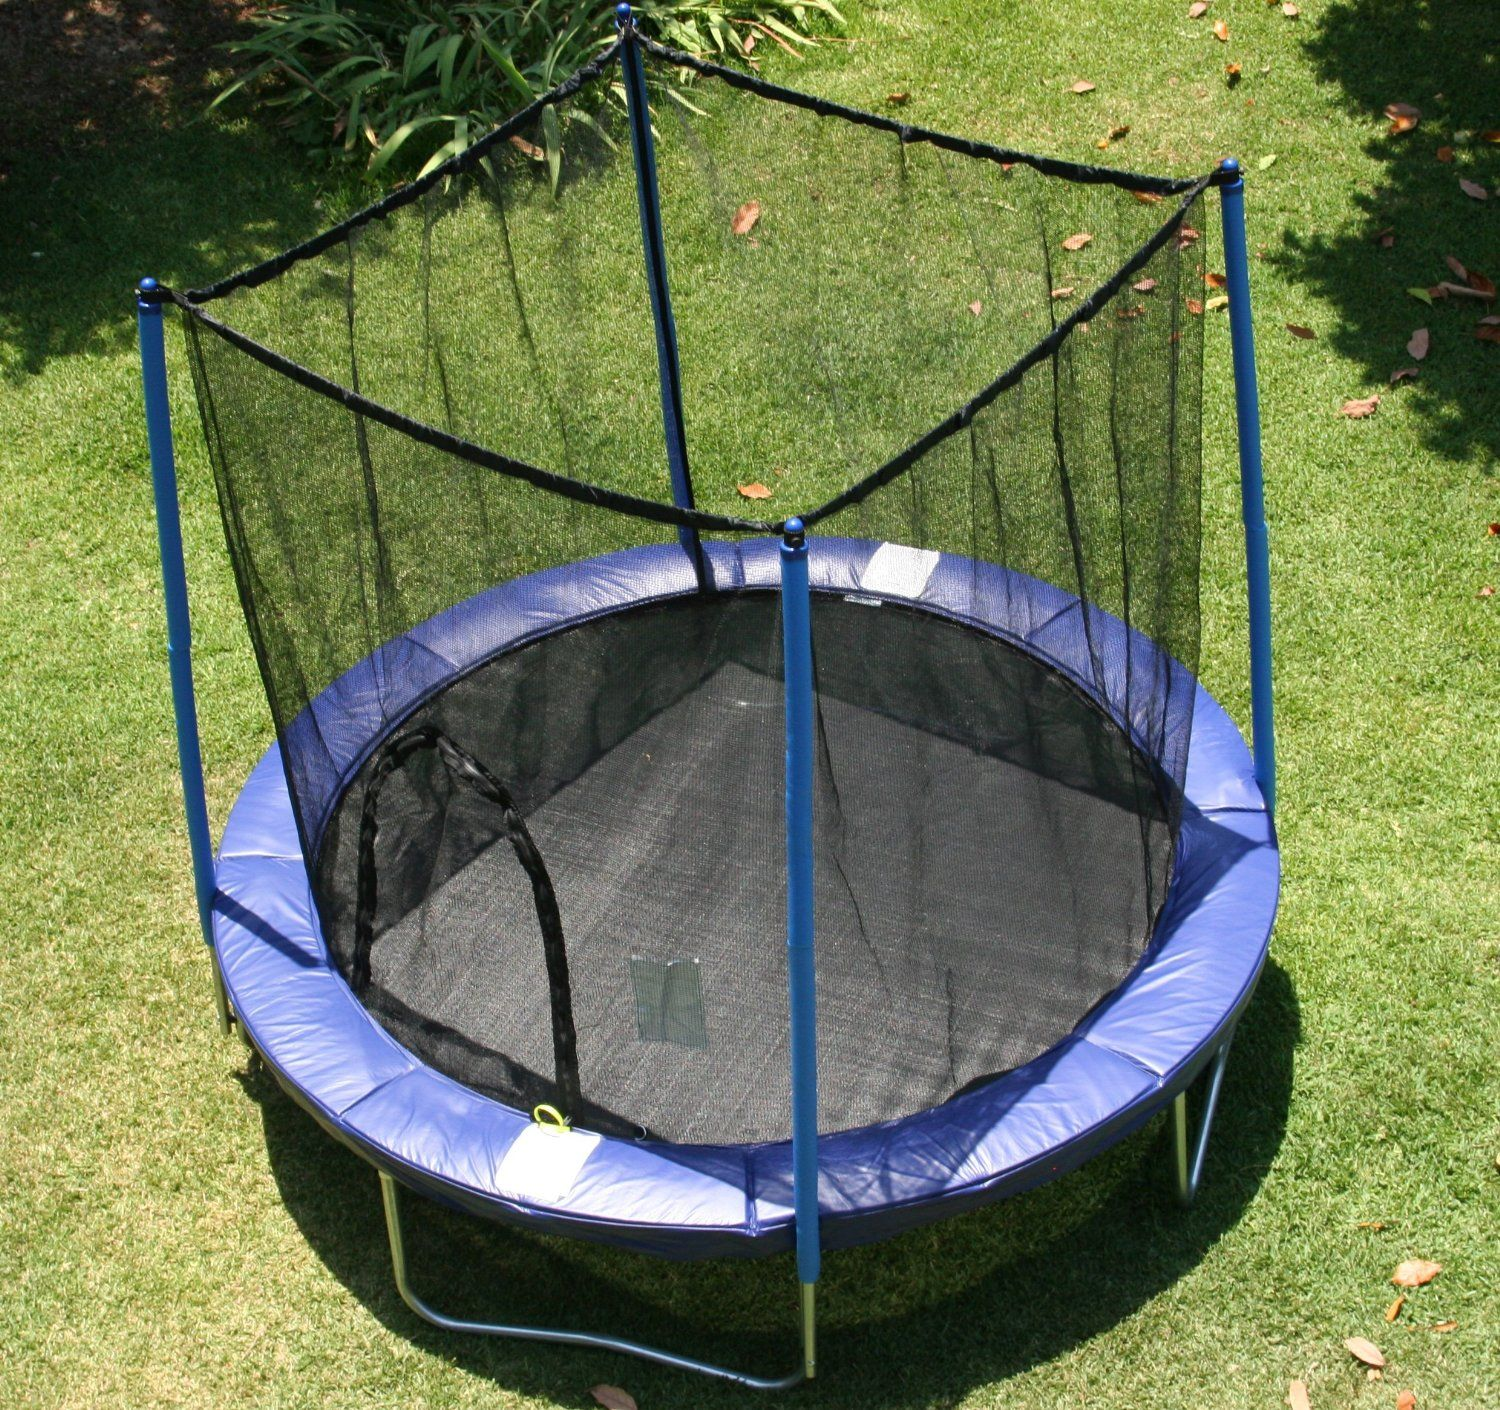 AirZone 8-Feet Outdoor Spring Trampoline with Mesh Padded ...